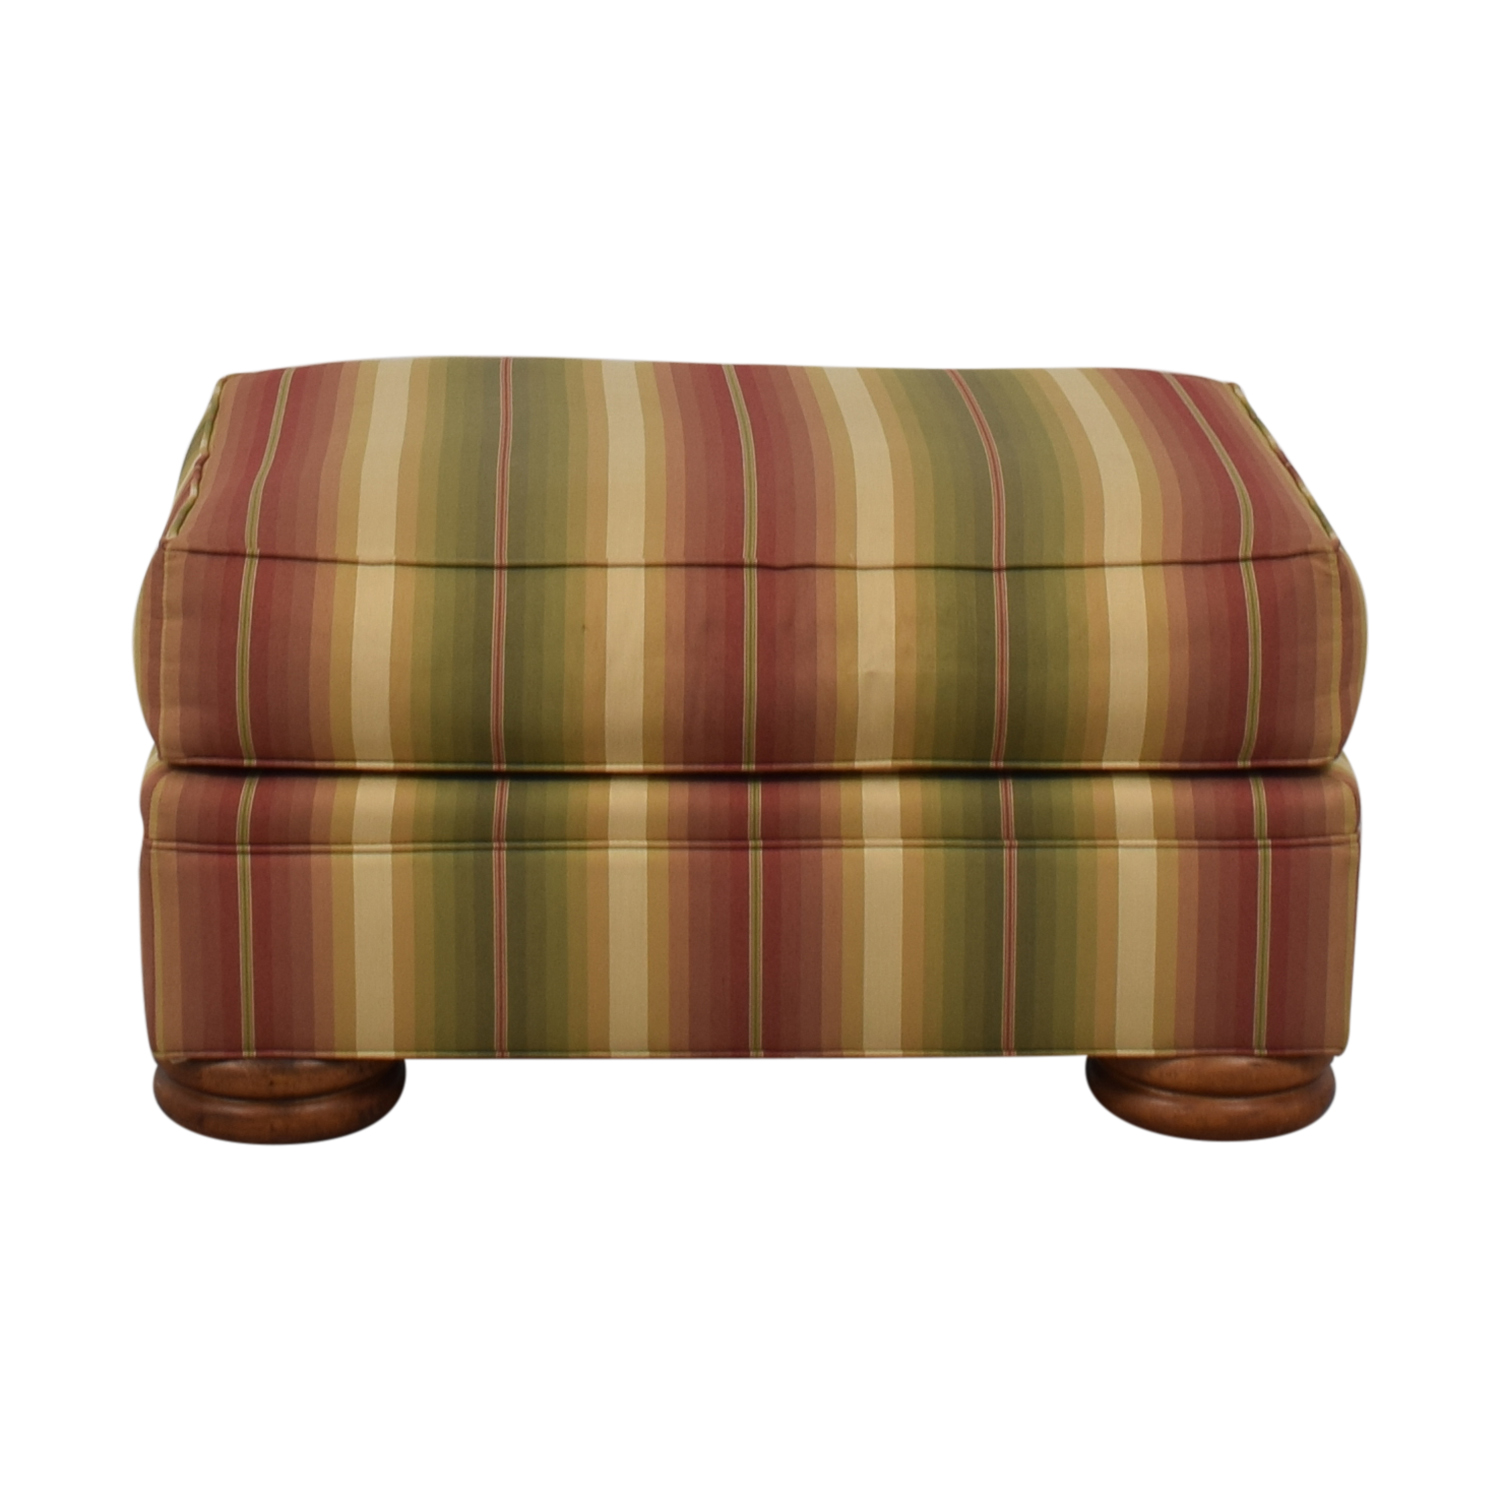 Thomasville Thomasville Striped Ottoman dimensions